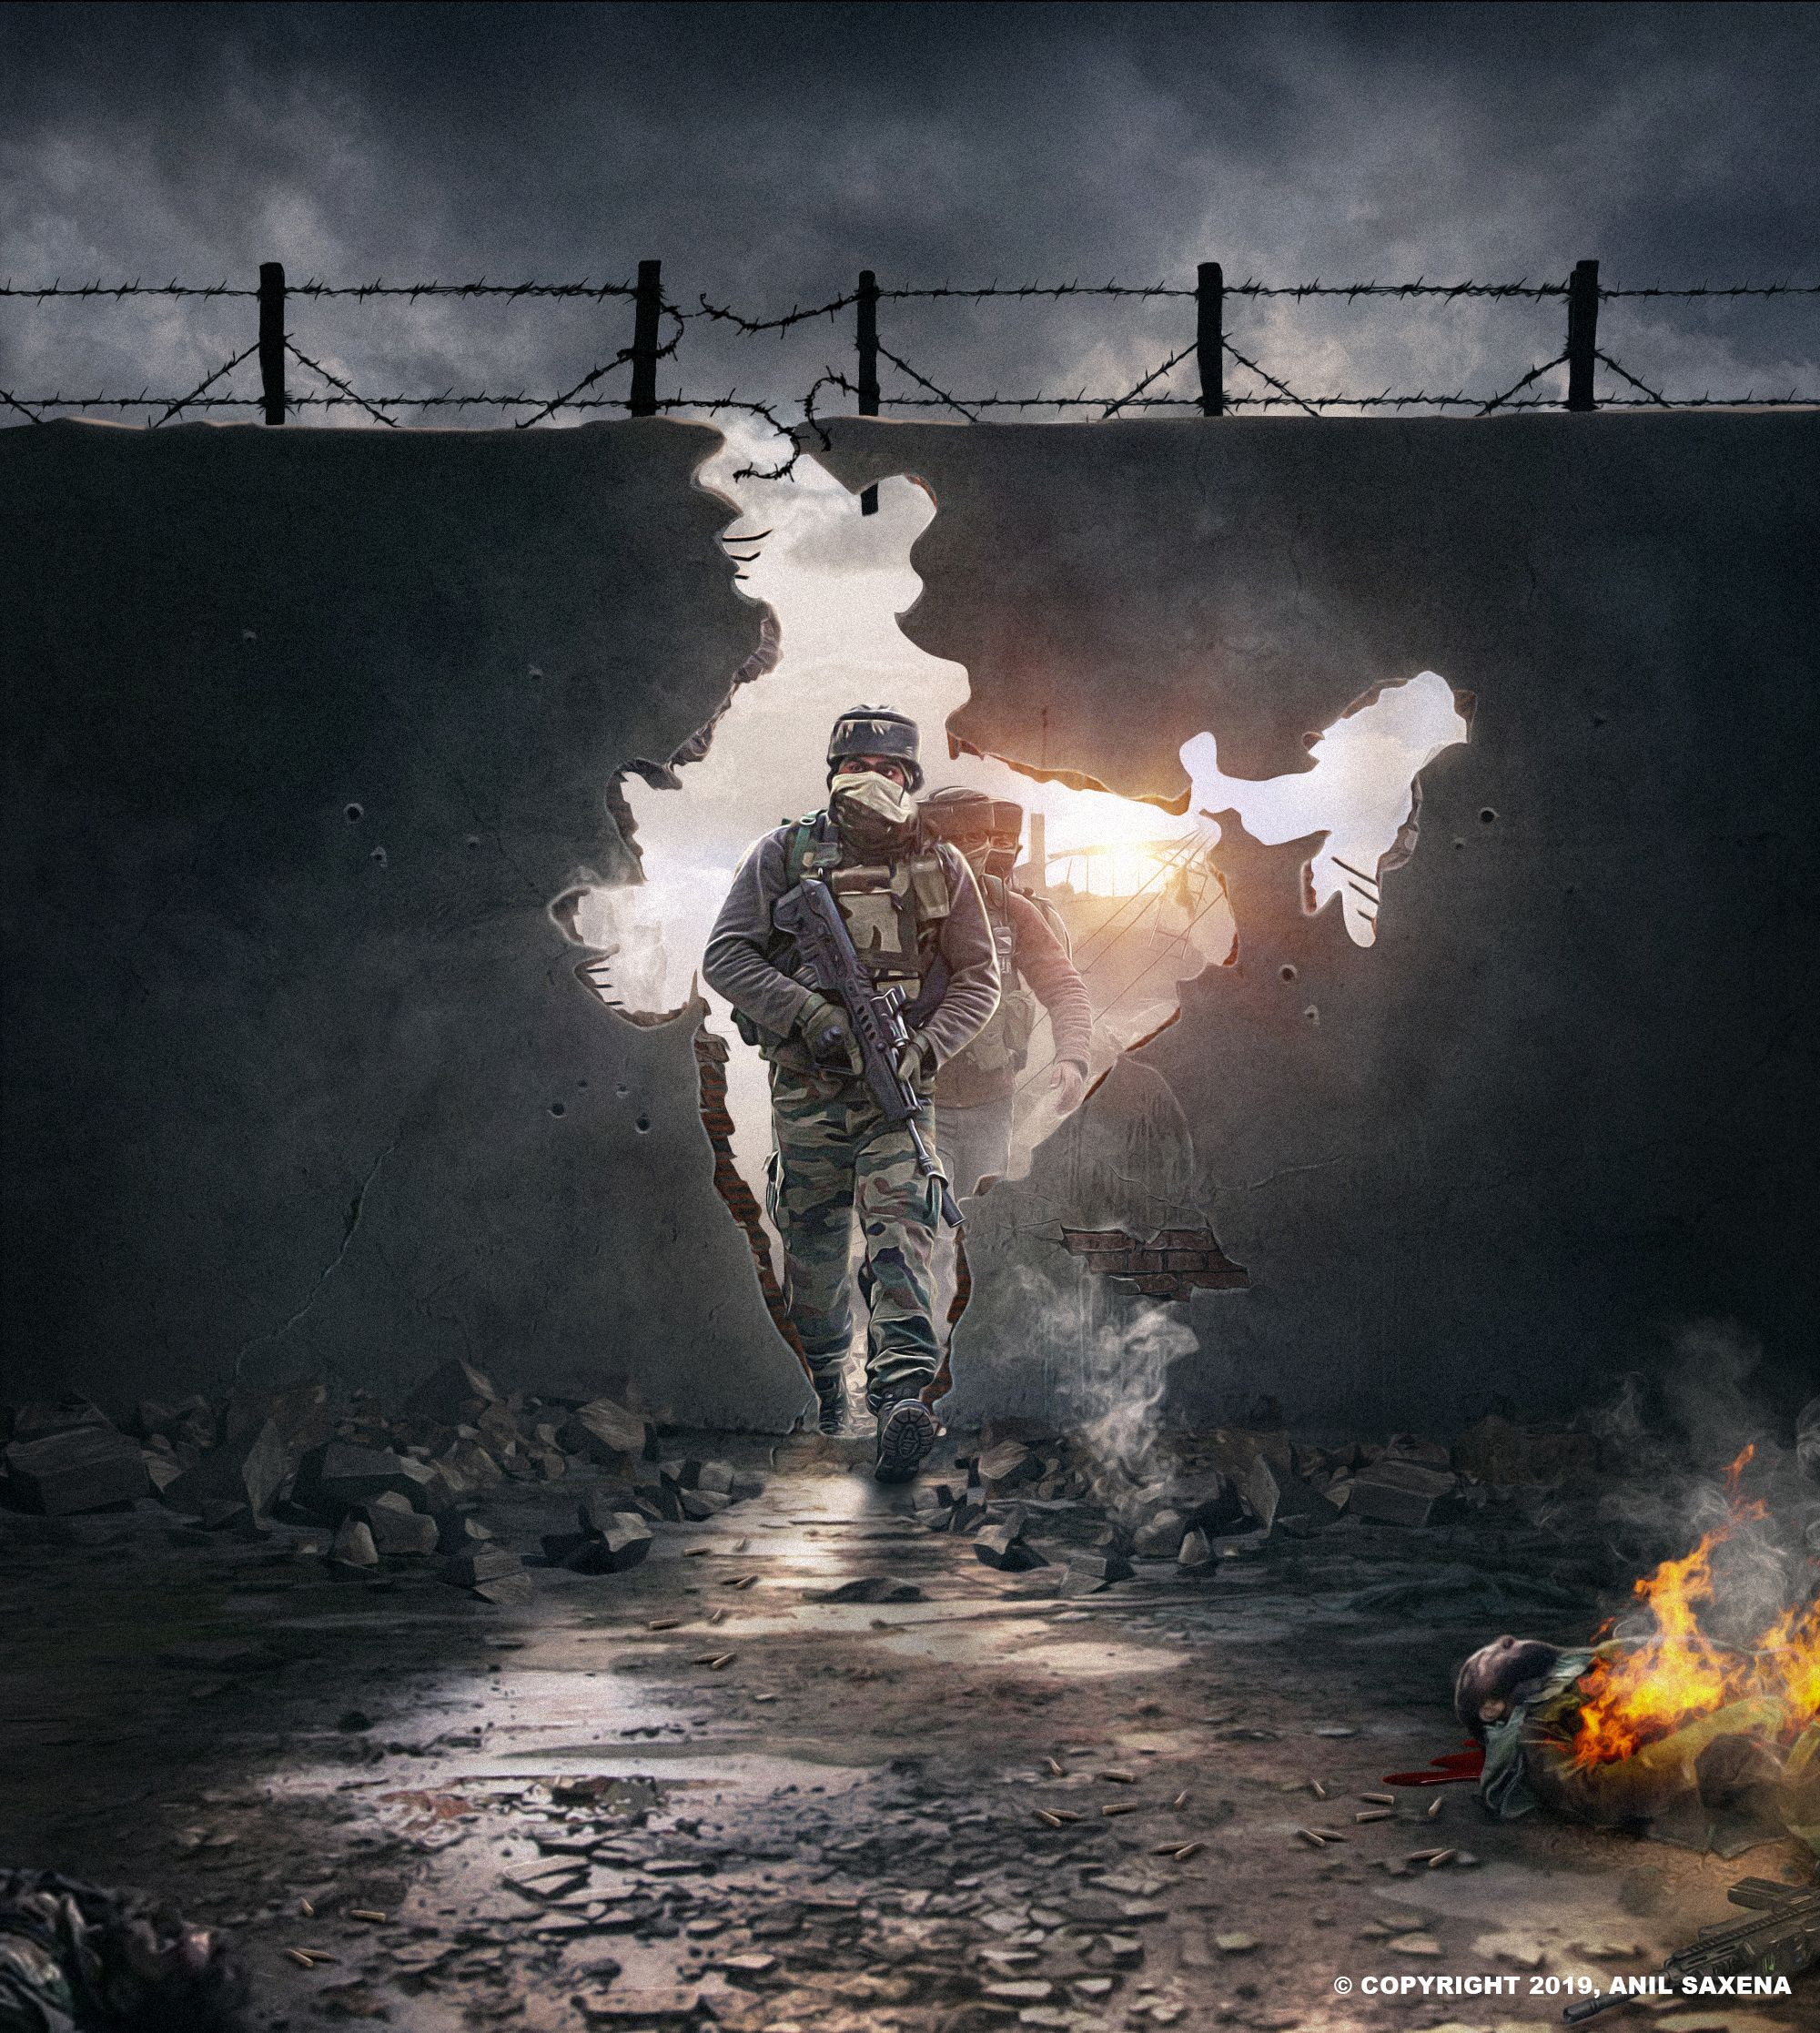 Behance 为您呈现 (With images) Indian army wallpapers